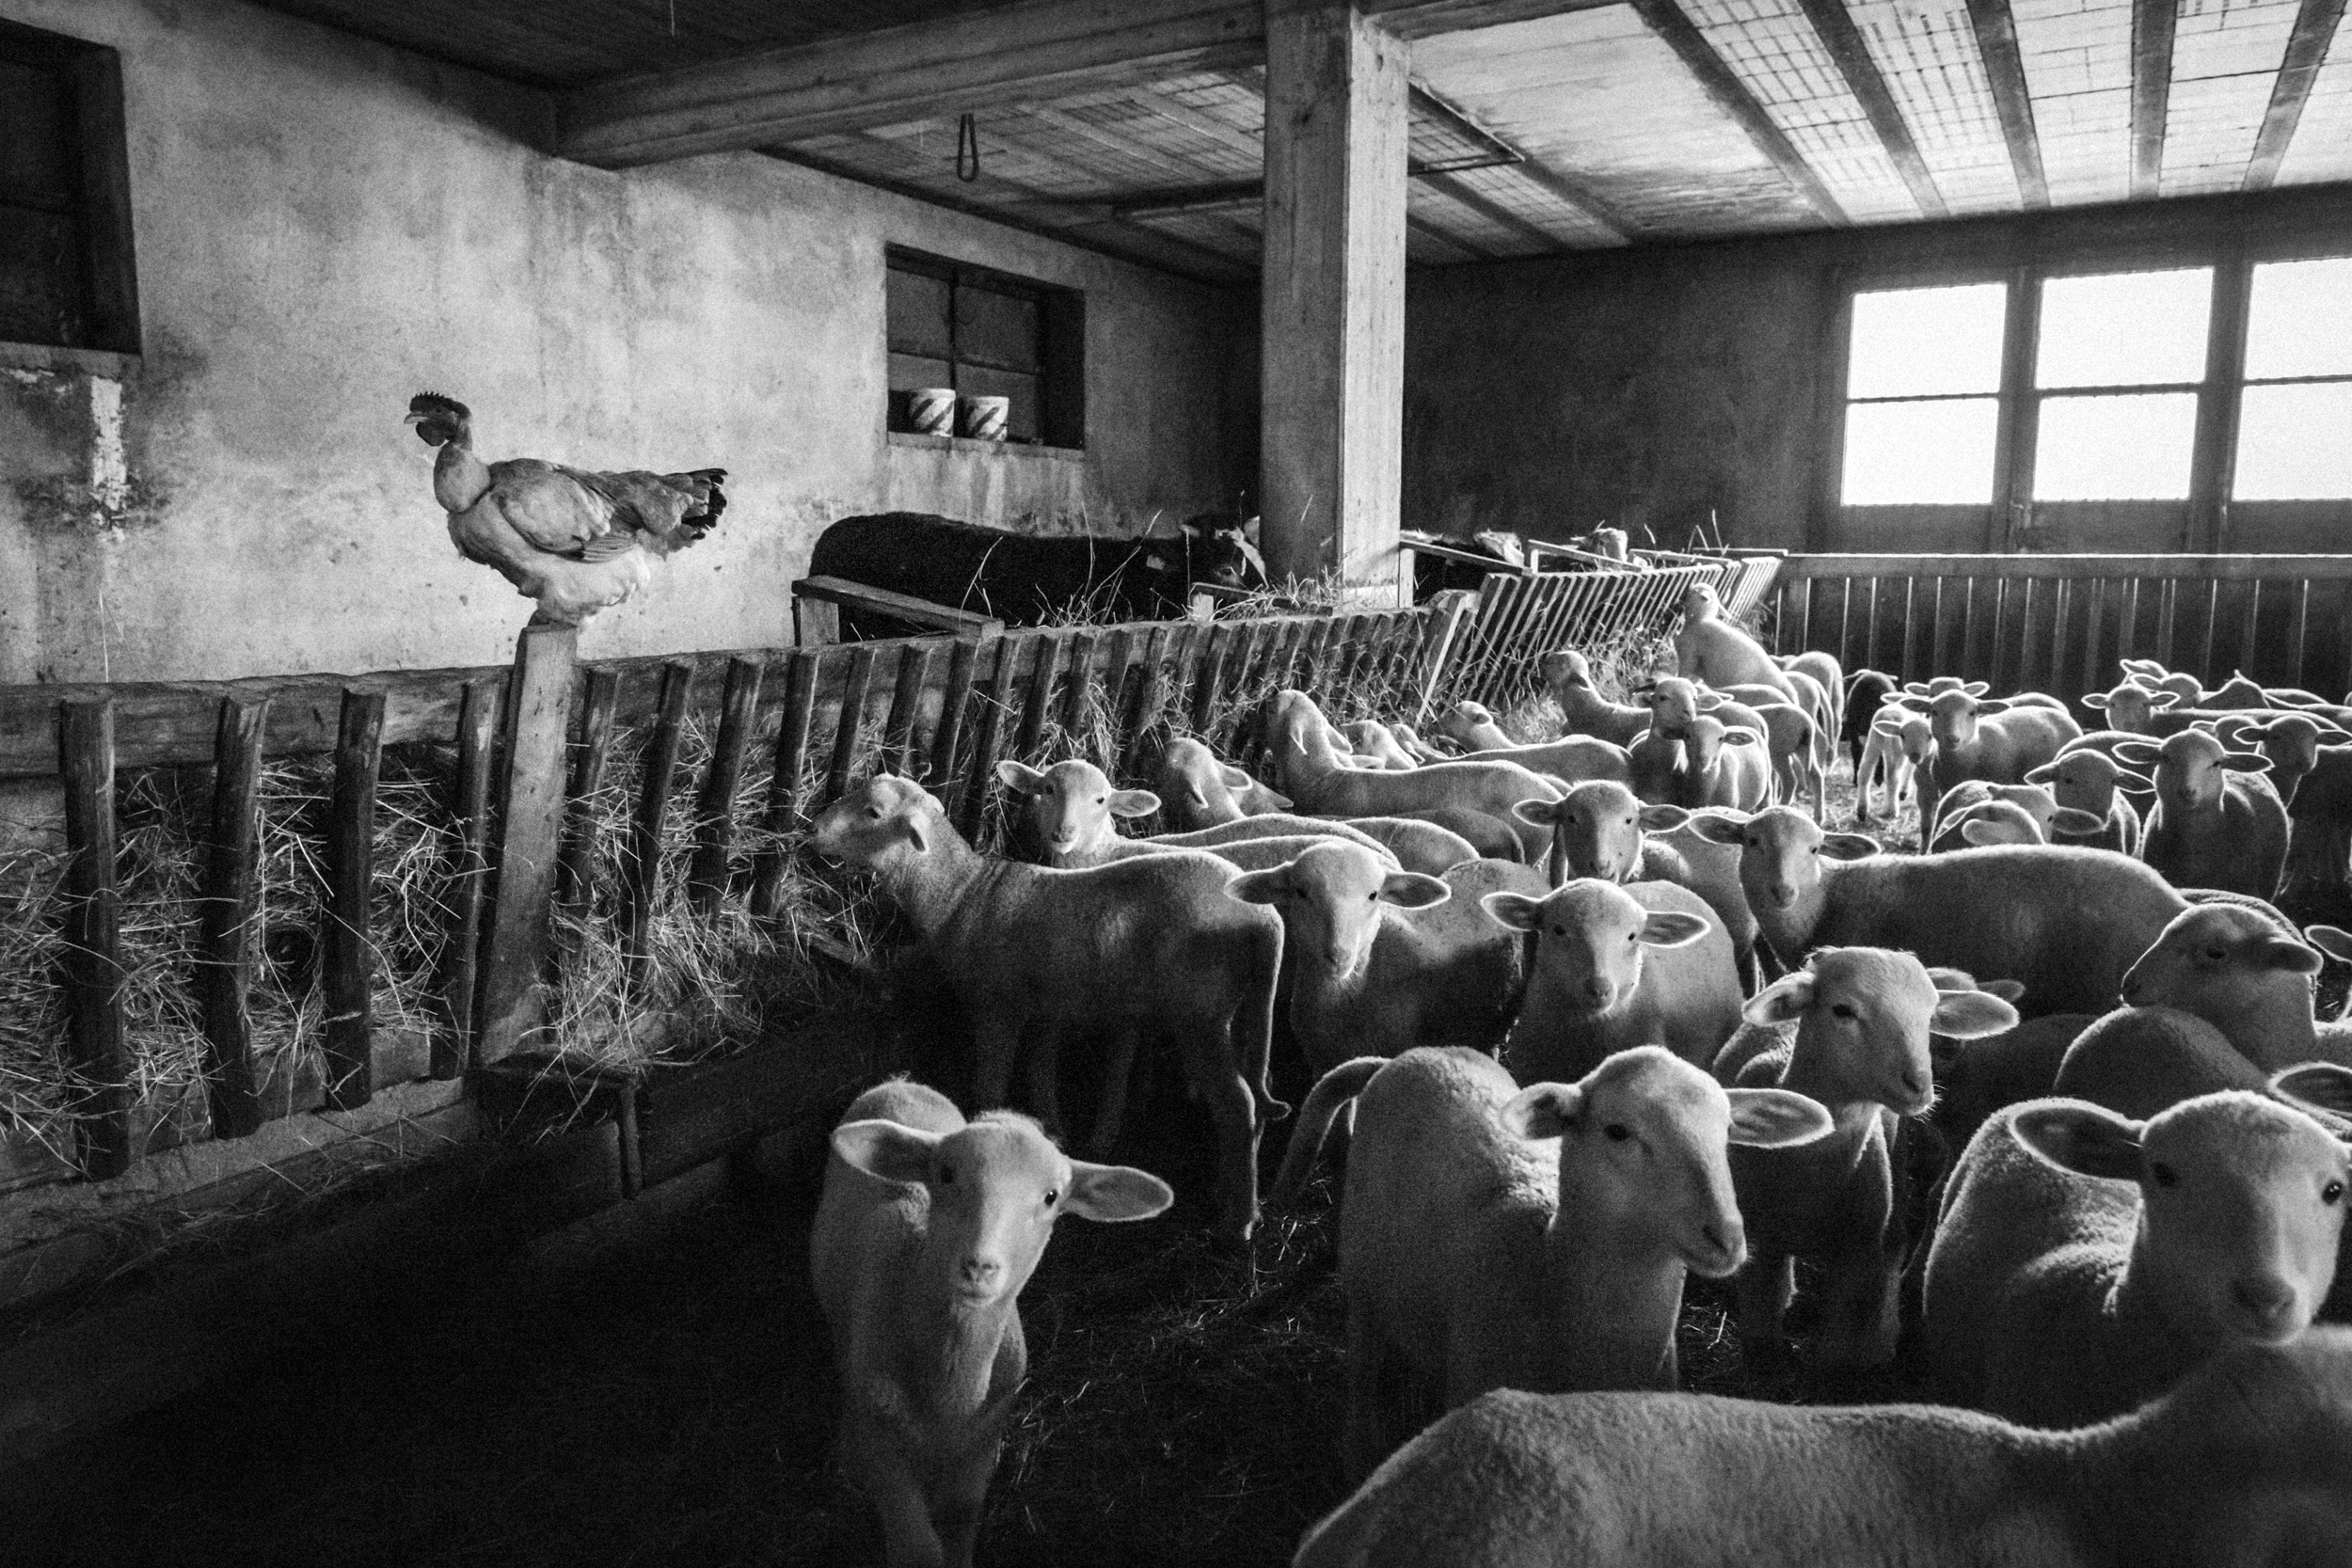 Pescopennataro (IS), Italy - January 2016. Animals in the stable of the Marcovecchio family.